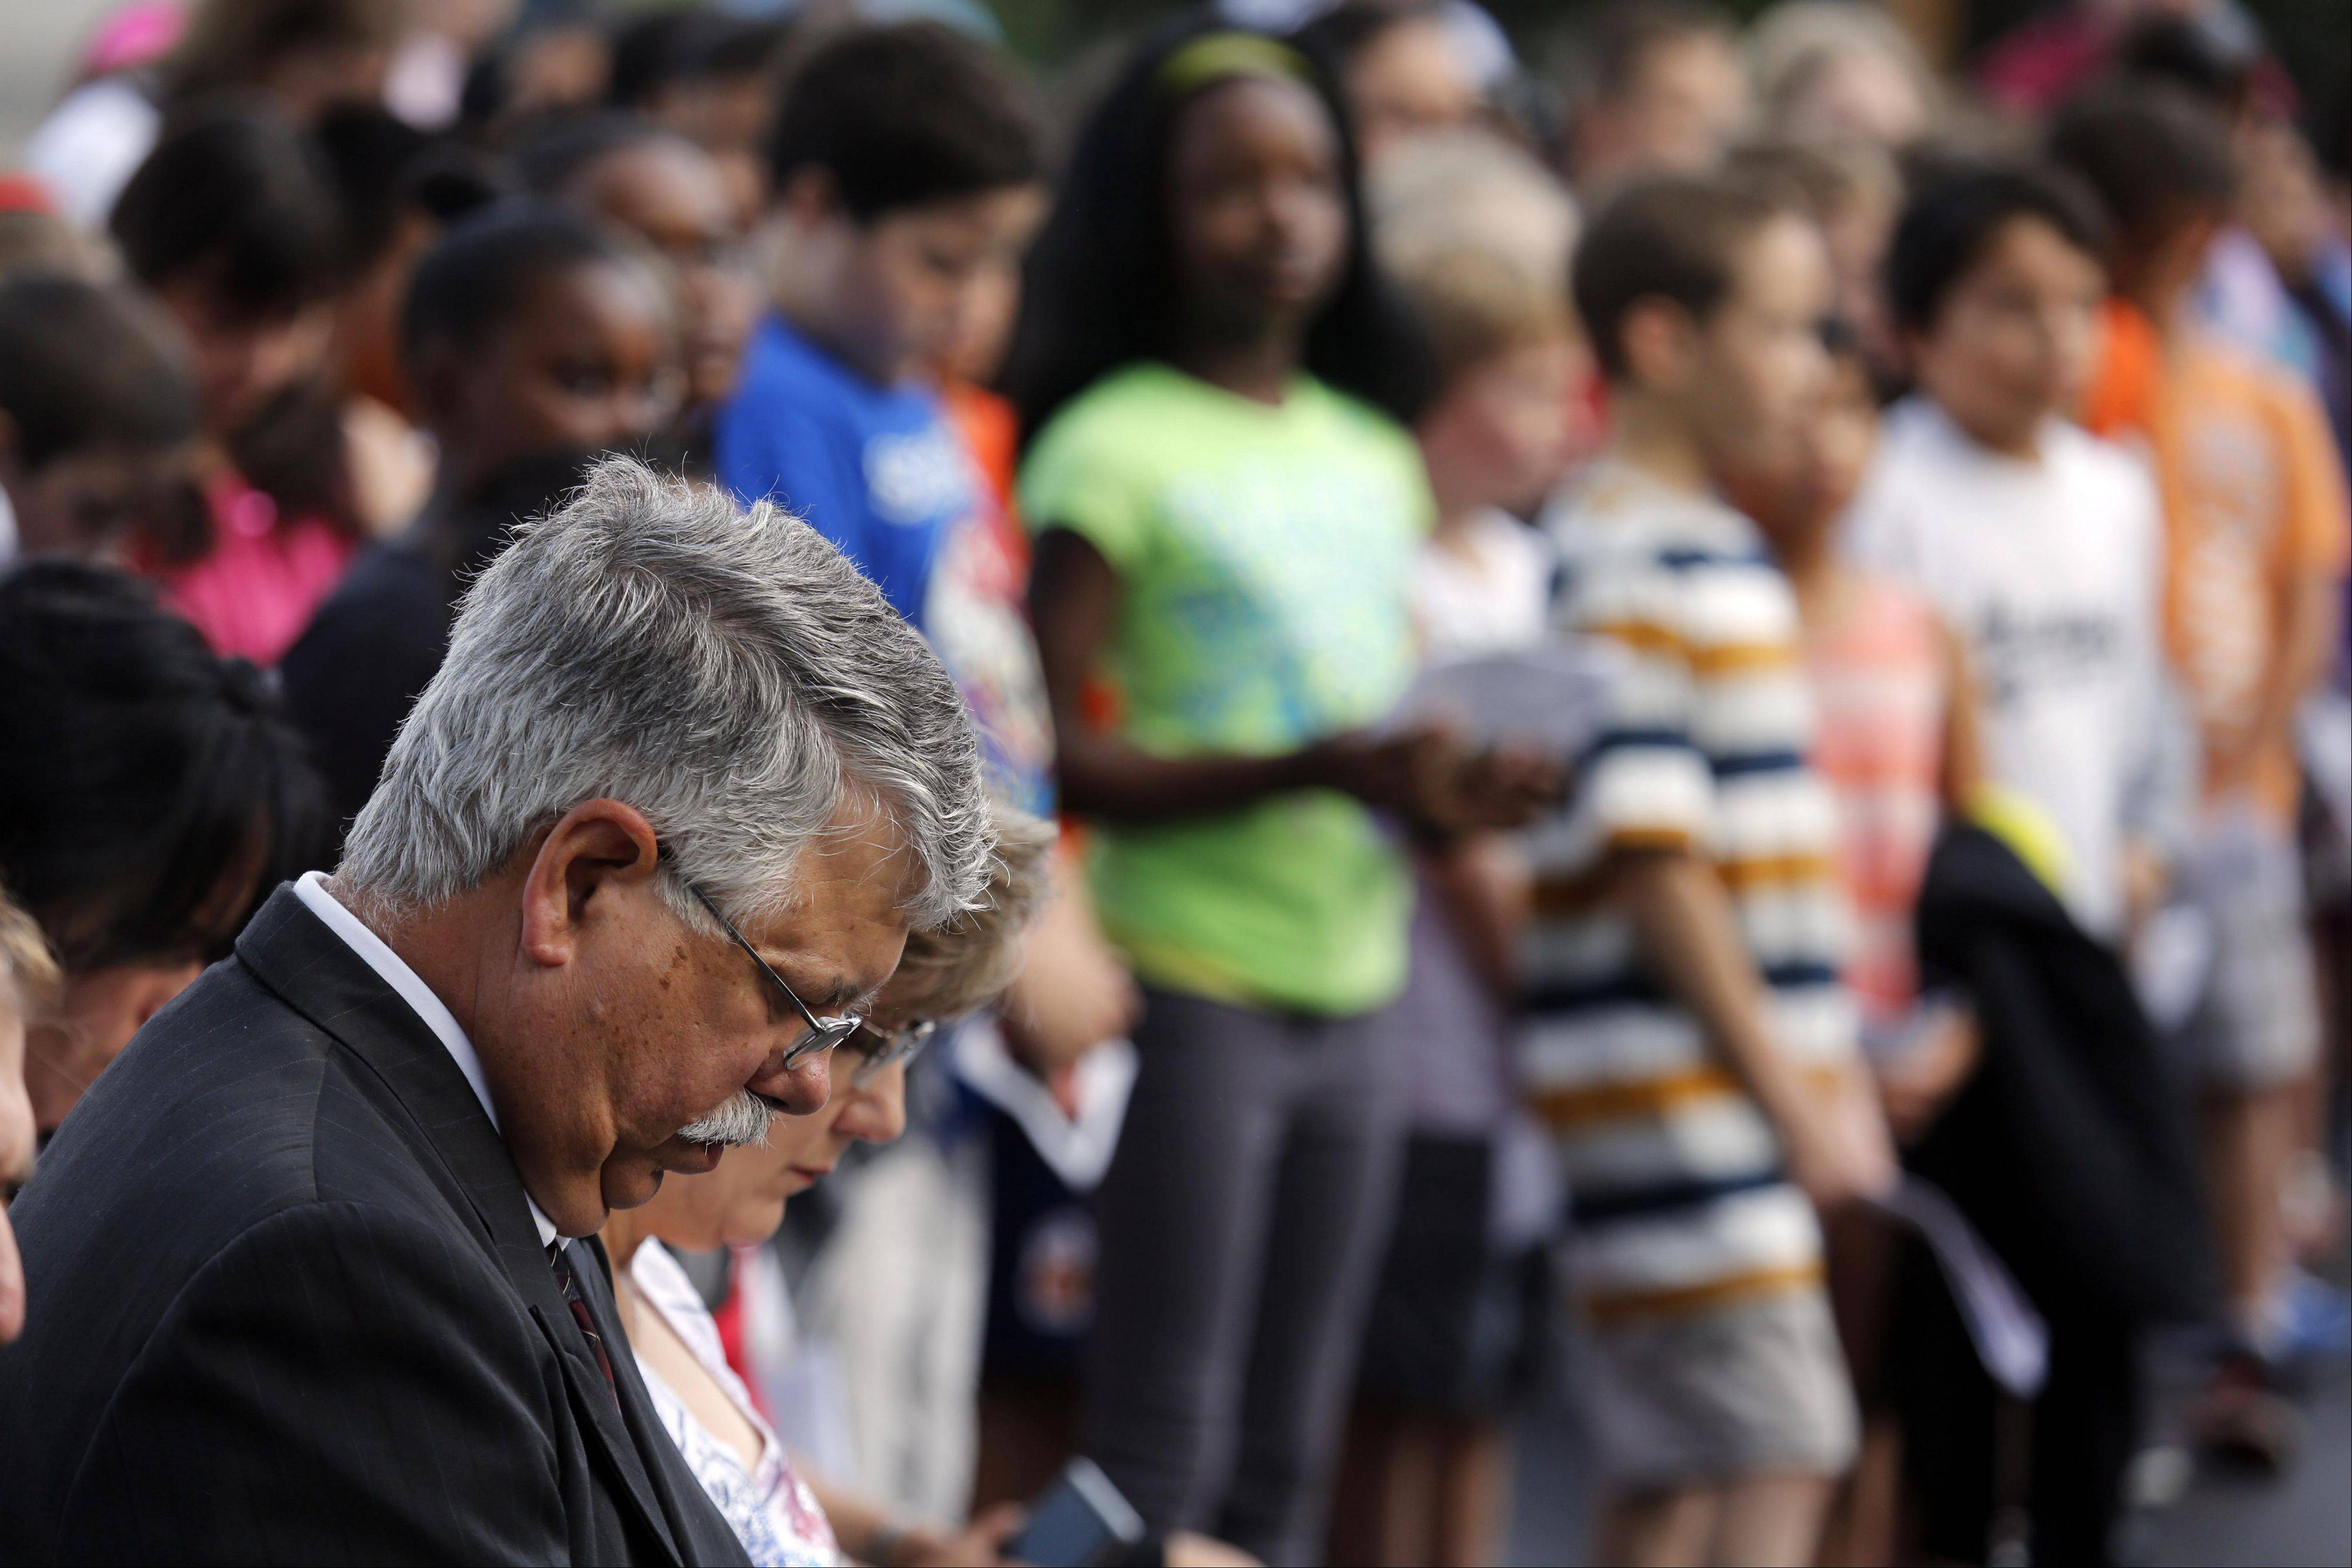 Carpentersville Village President Ed Ritter, reflects during prayer at the Sept. 11 ceremony Wednesday at Carpentersville Fire Station 1.